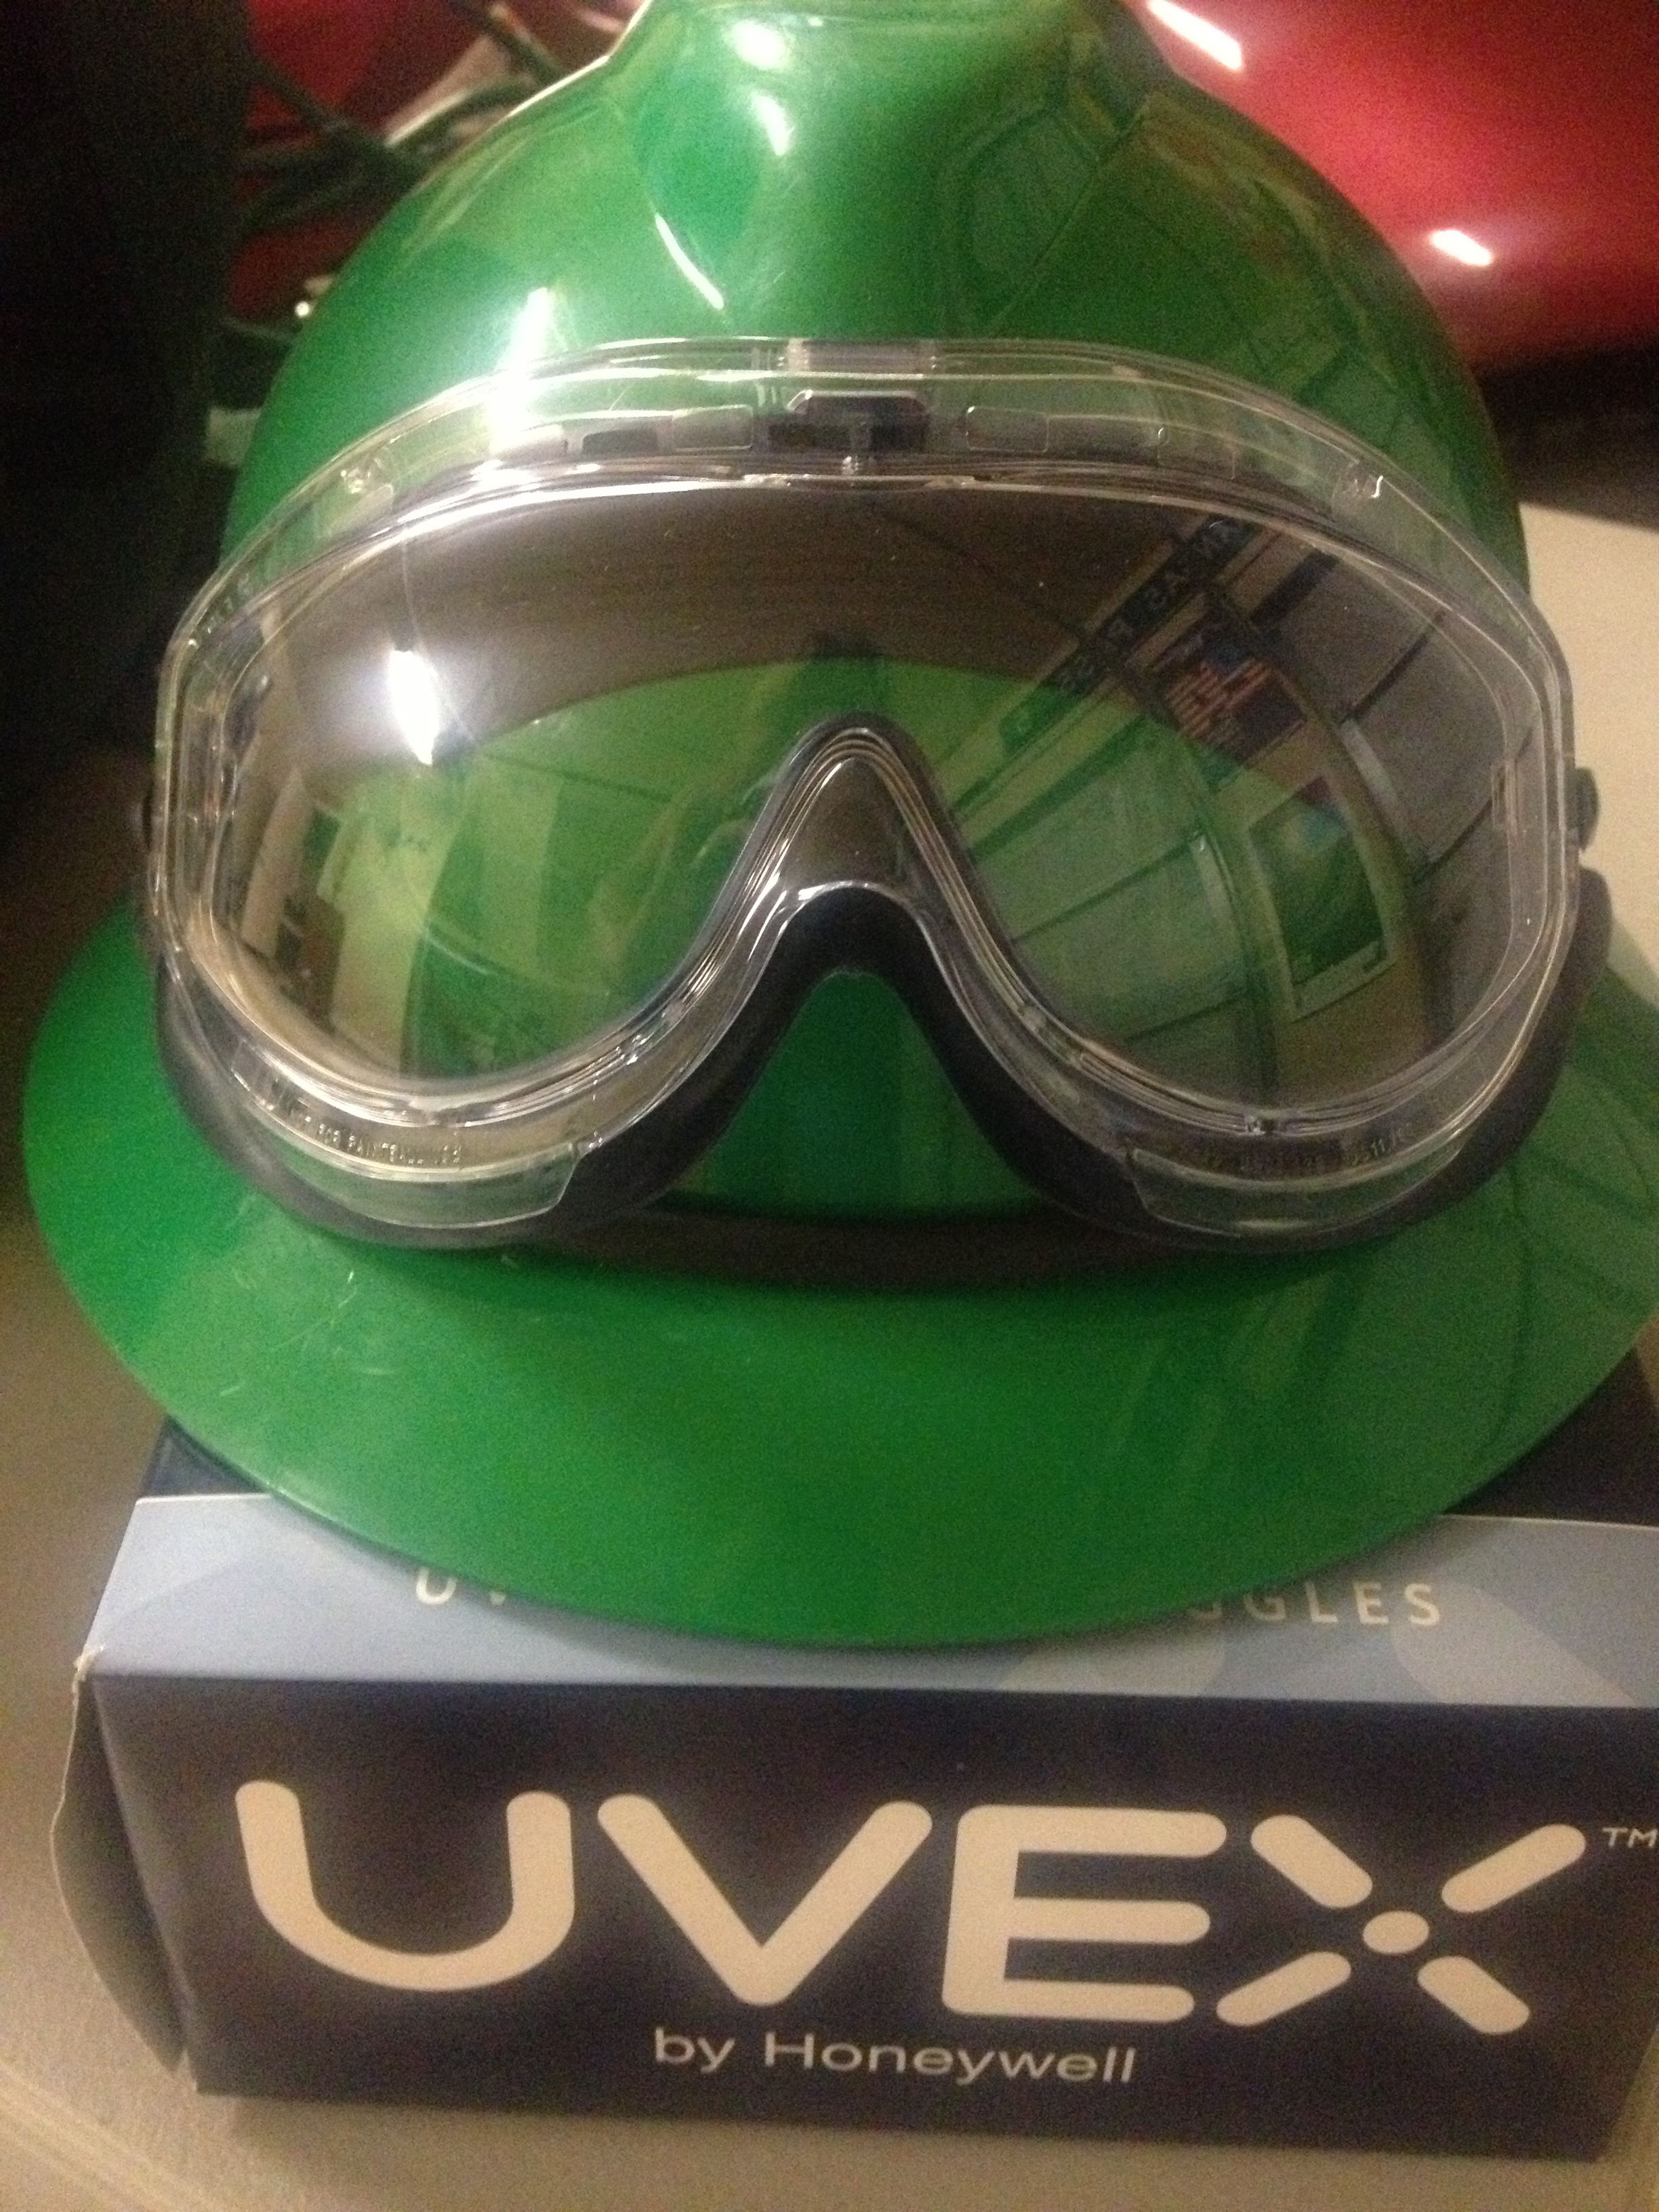 UVEX safety goggles by Honeywell. Available at Grainger